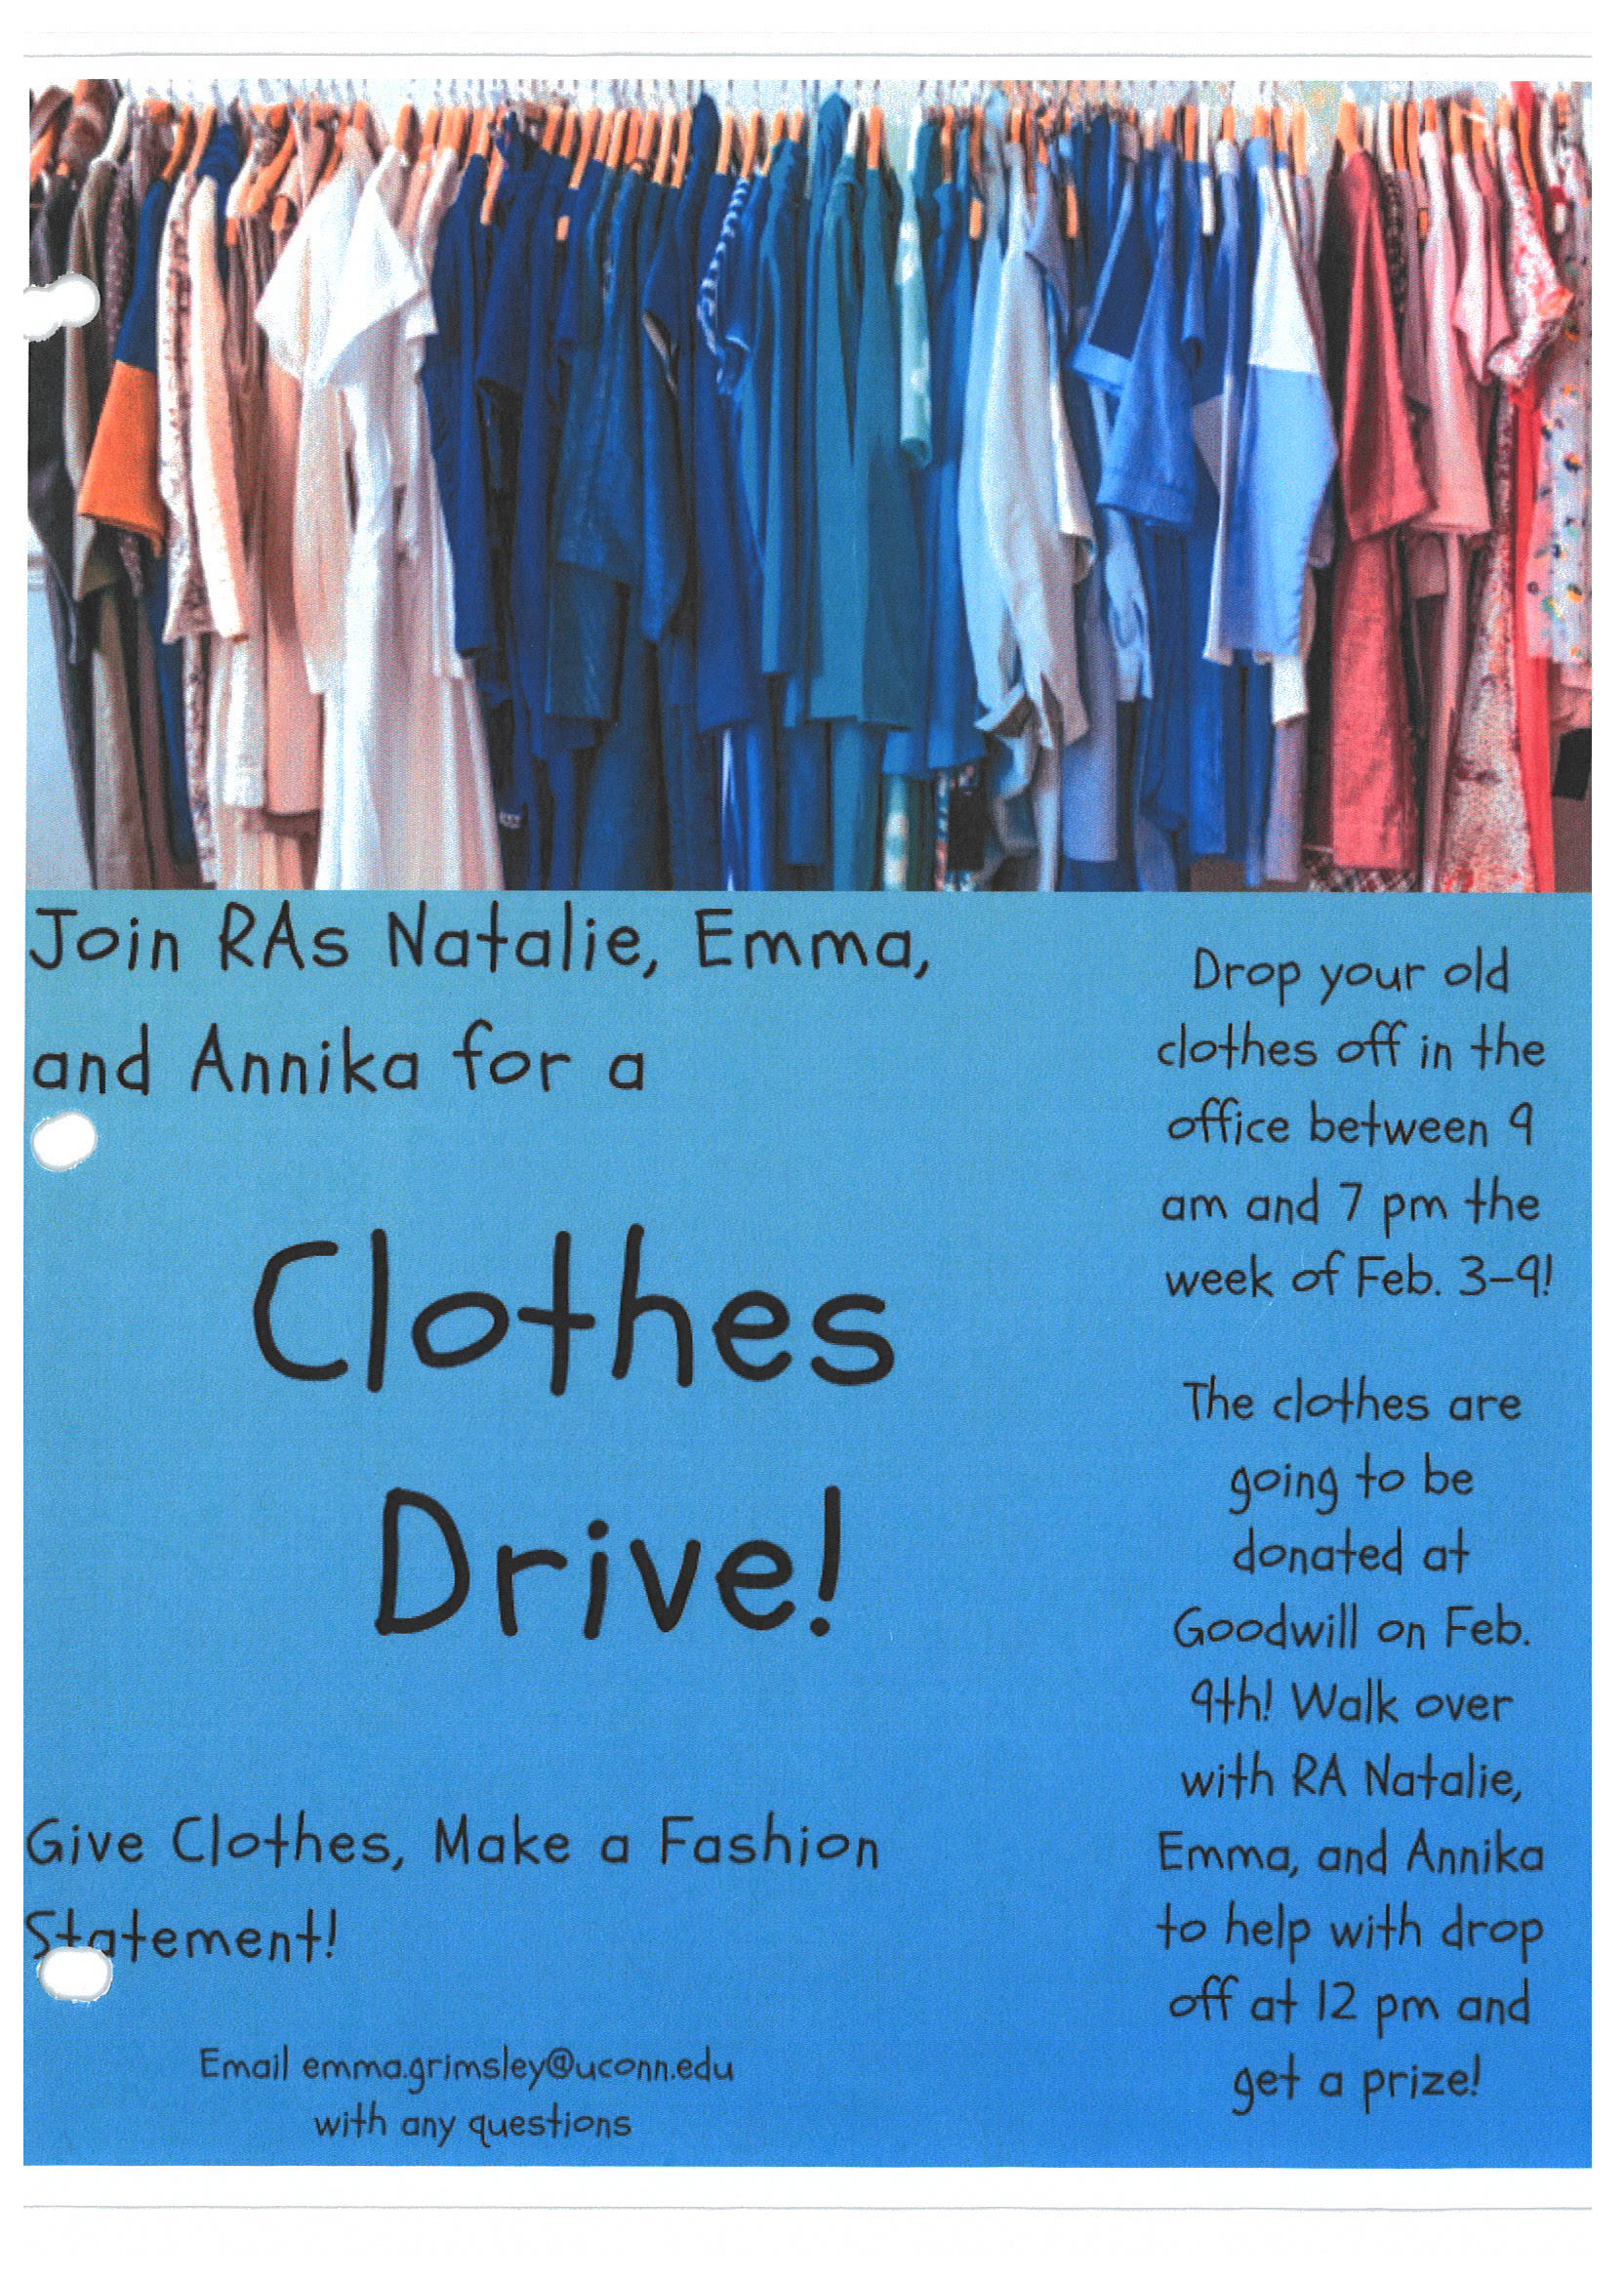 Stamford programming flyer example: clothing Drive